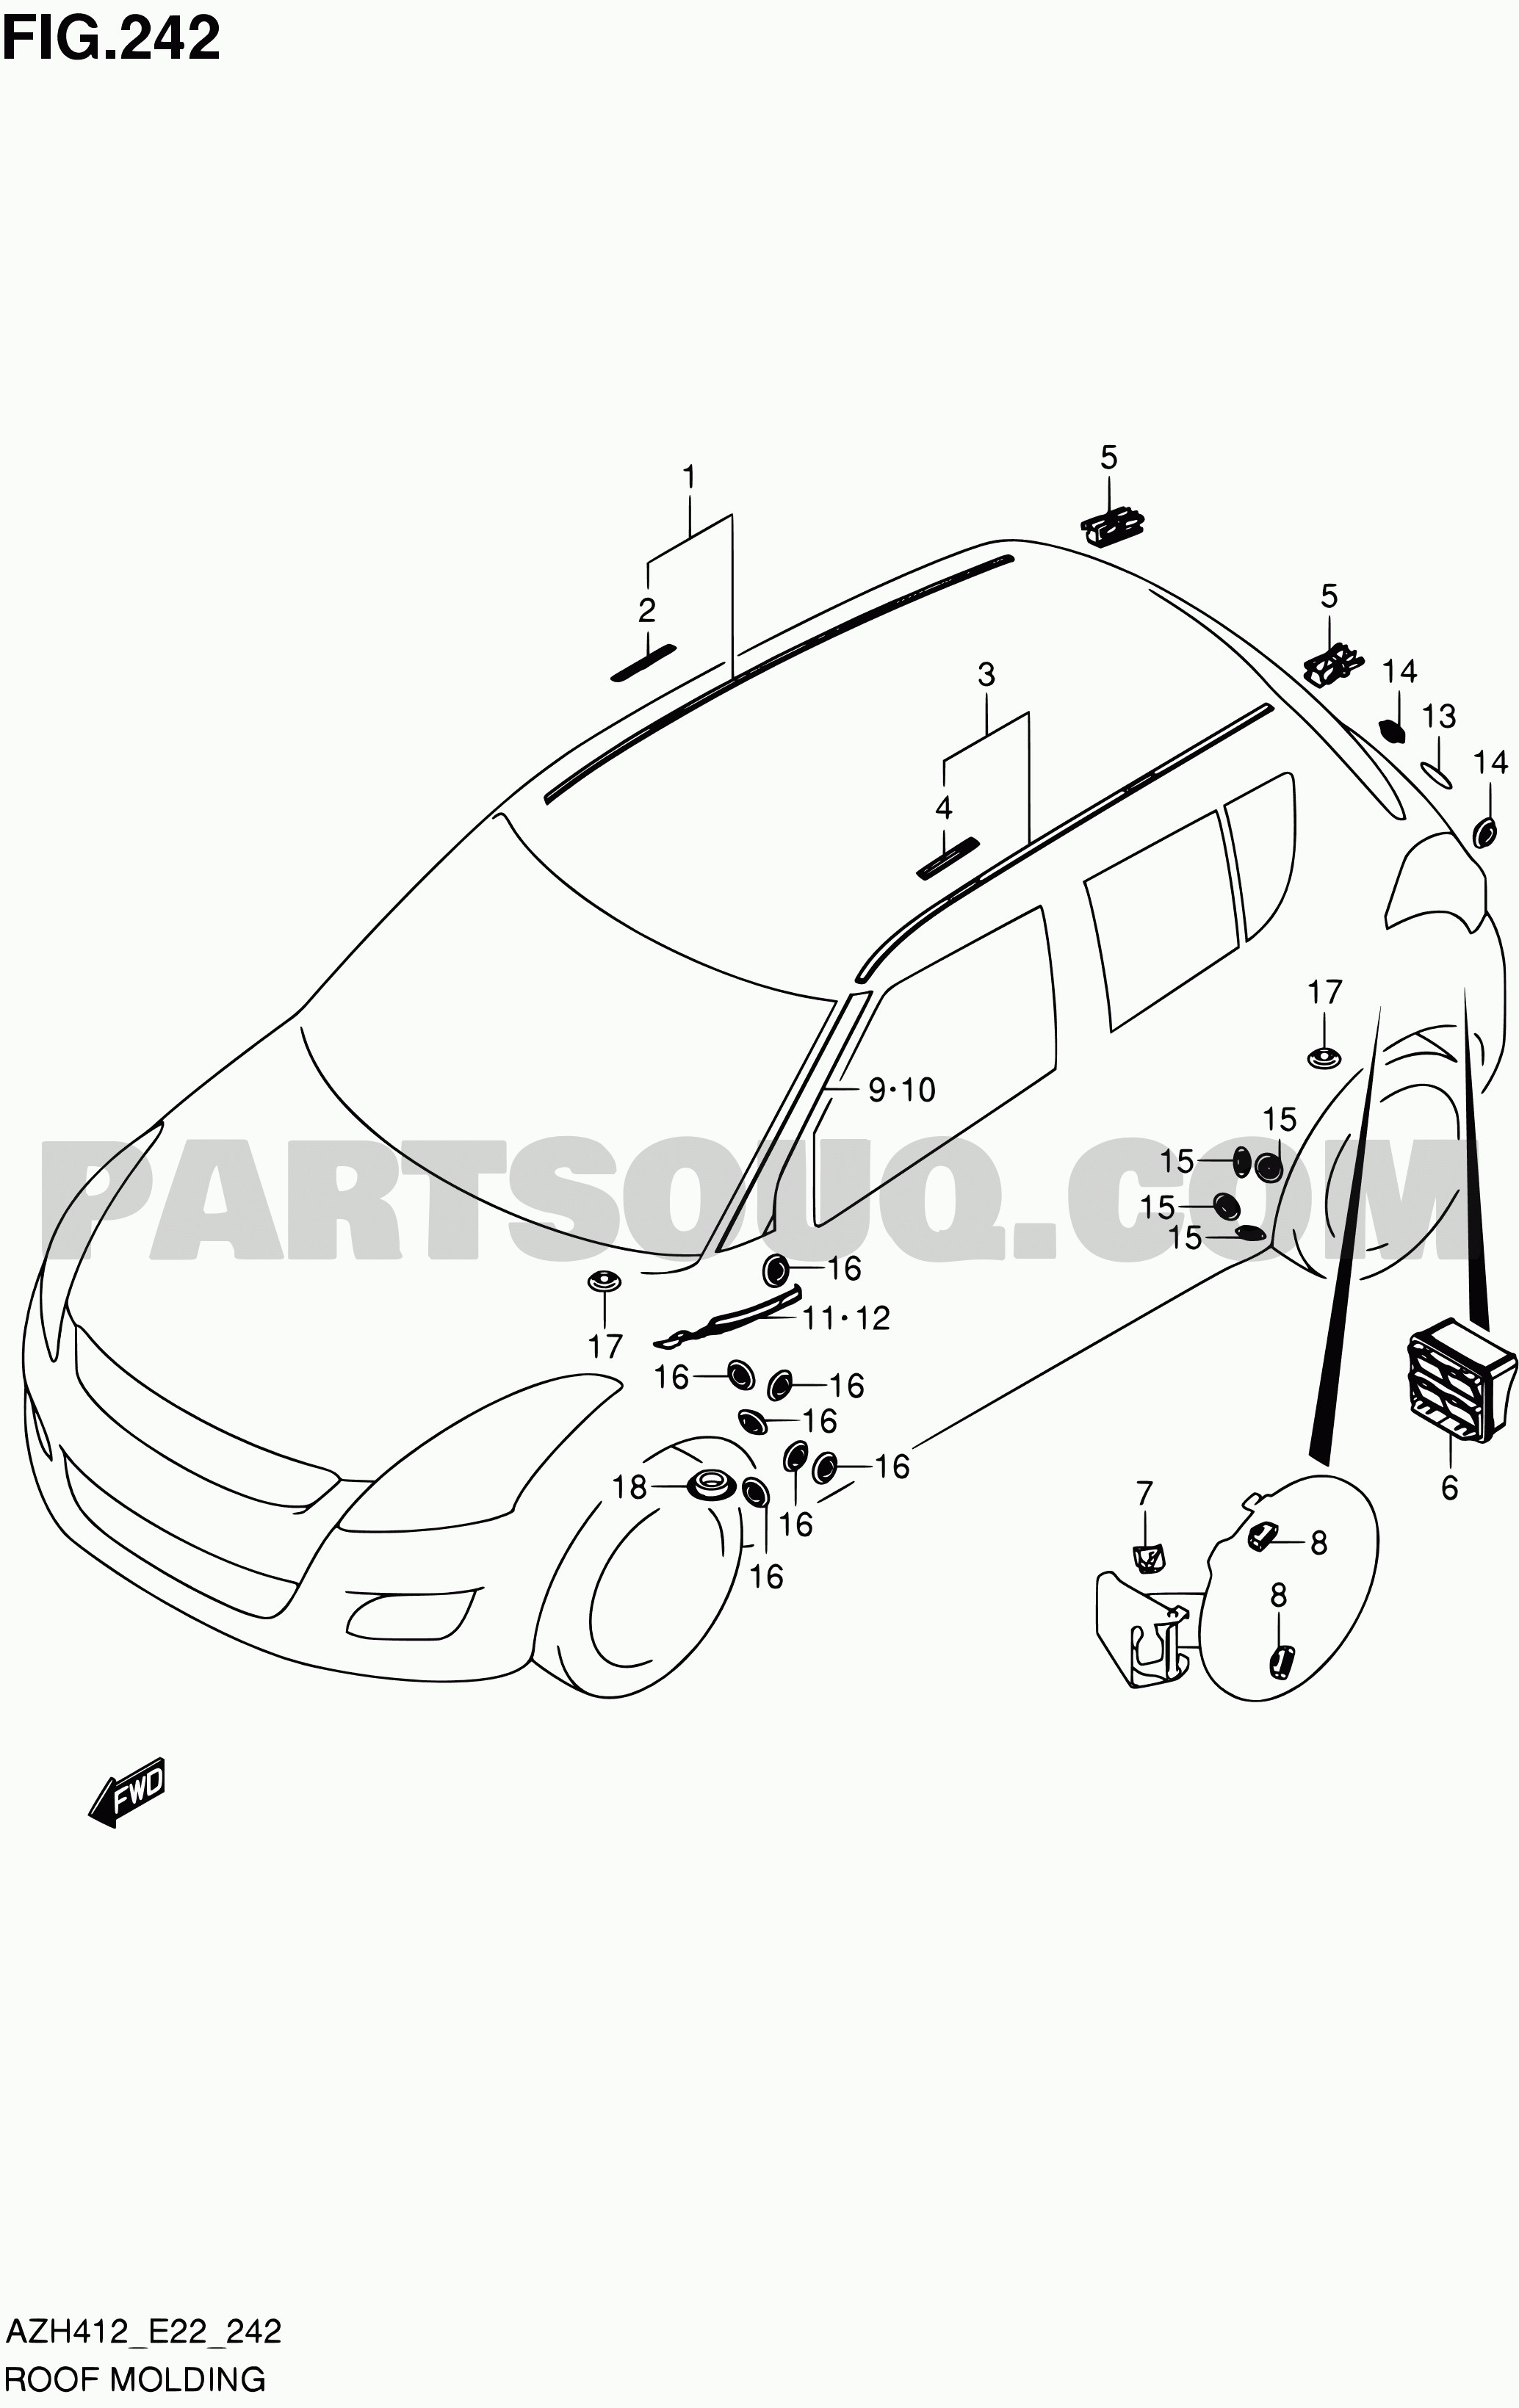 car exterior parts diagram with names 2008 yamaha raptor 700 wiring labeled 242